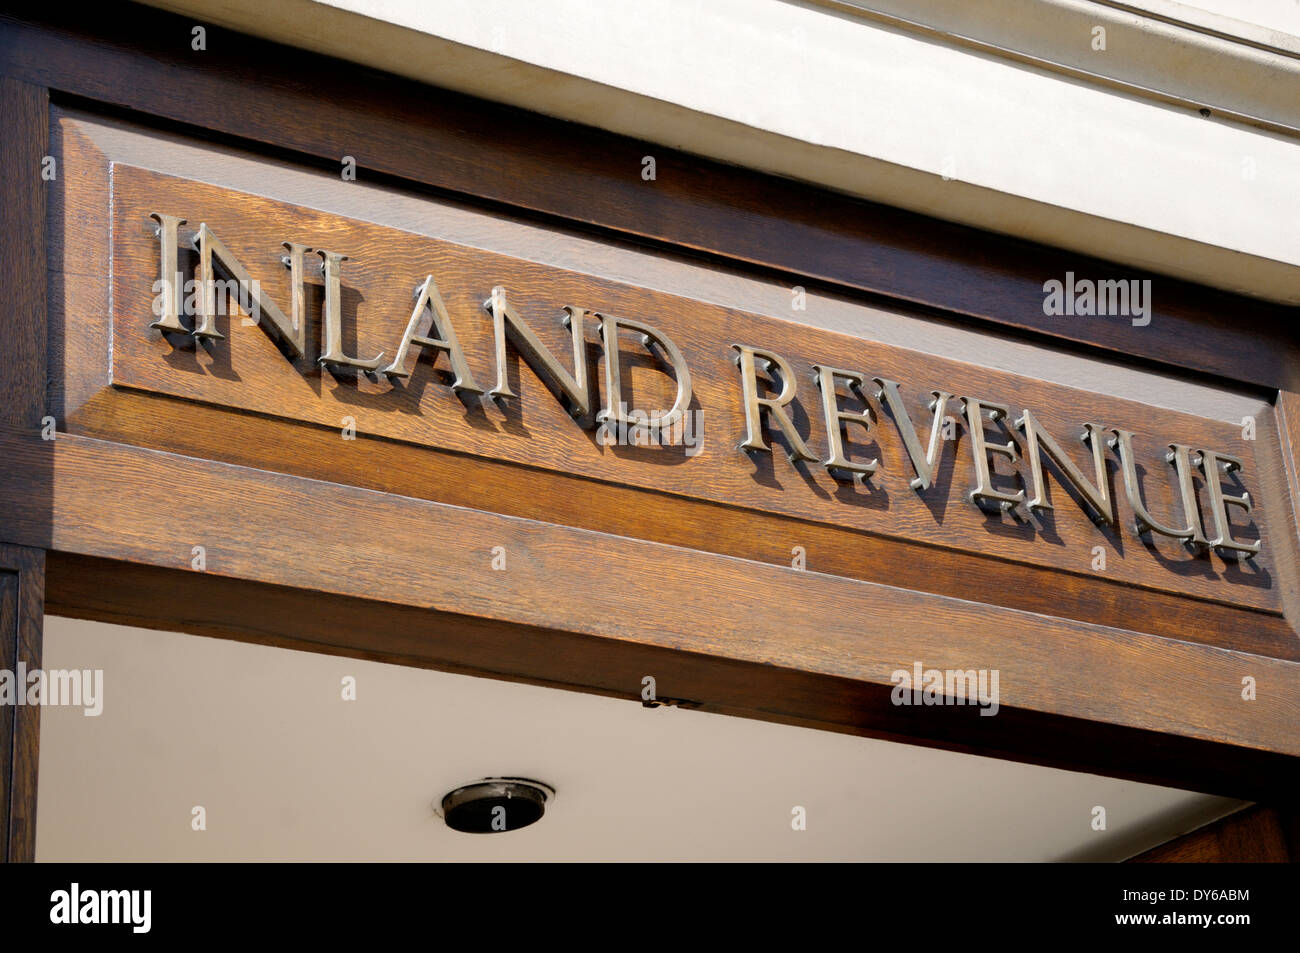 London, England, UK. Inland Revenue (tax) office in Bush House - Stock Image